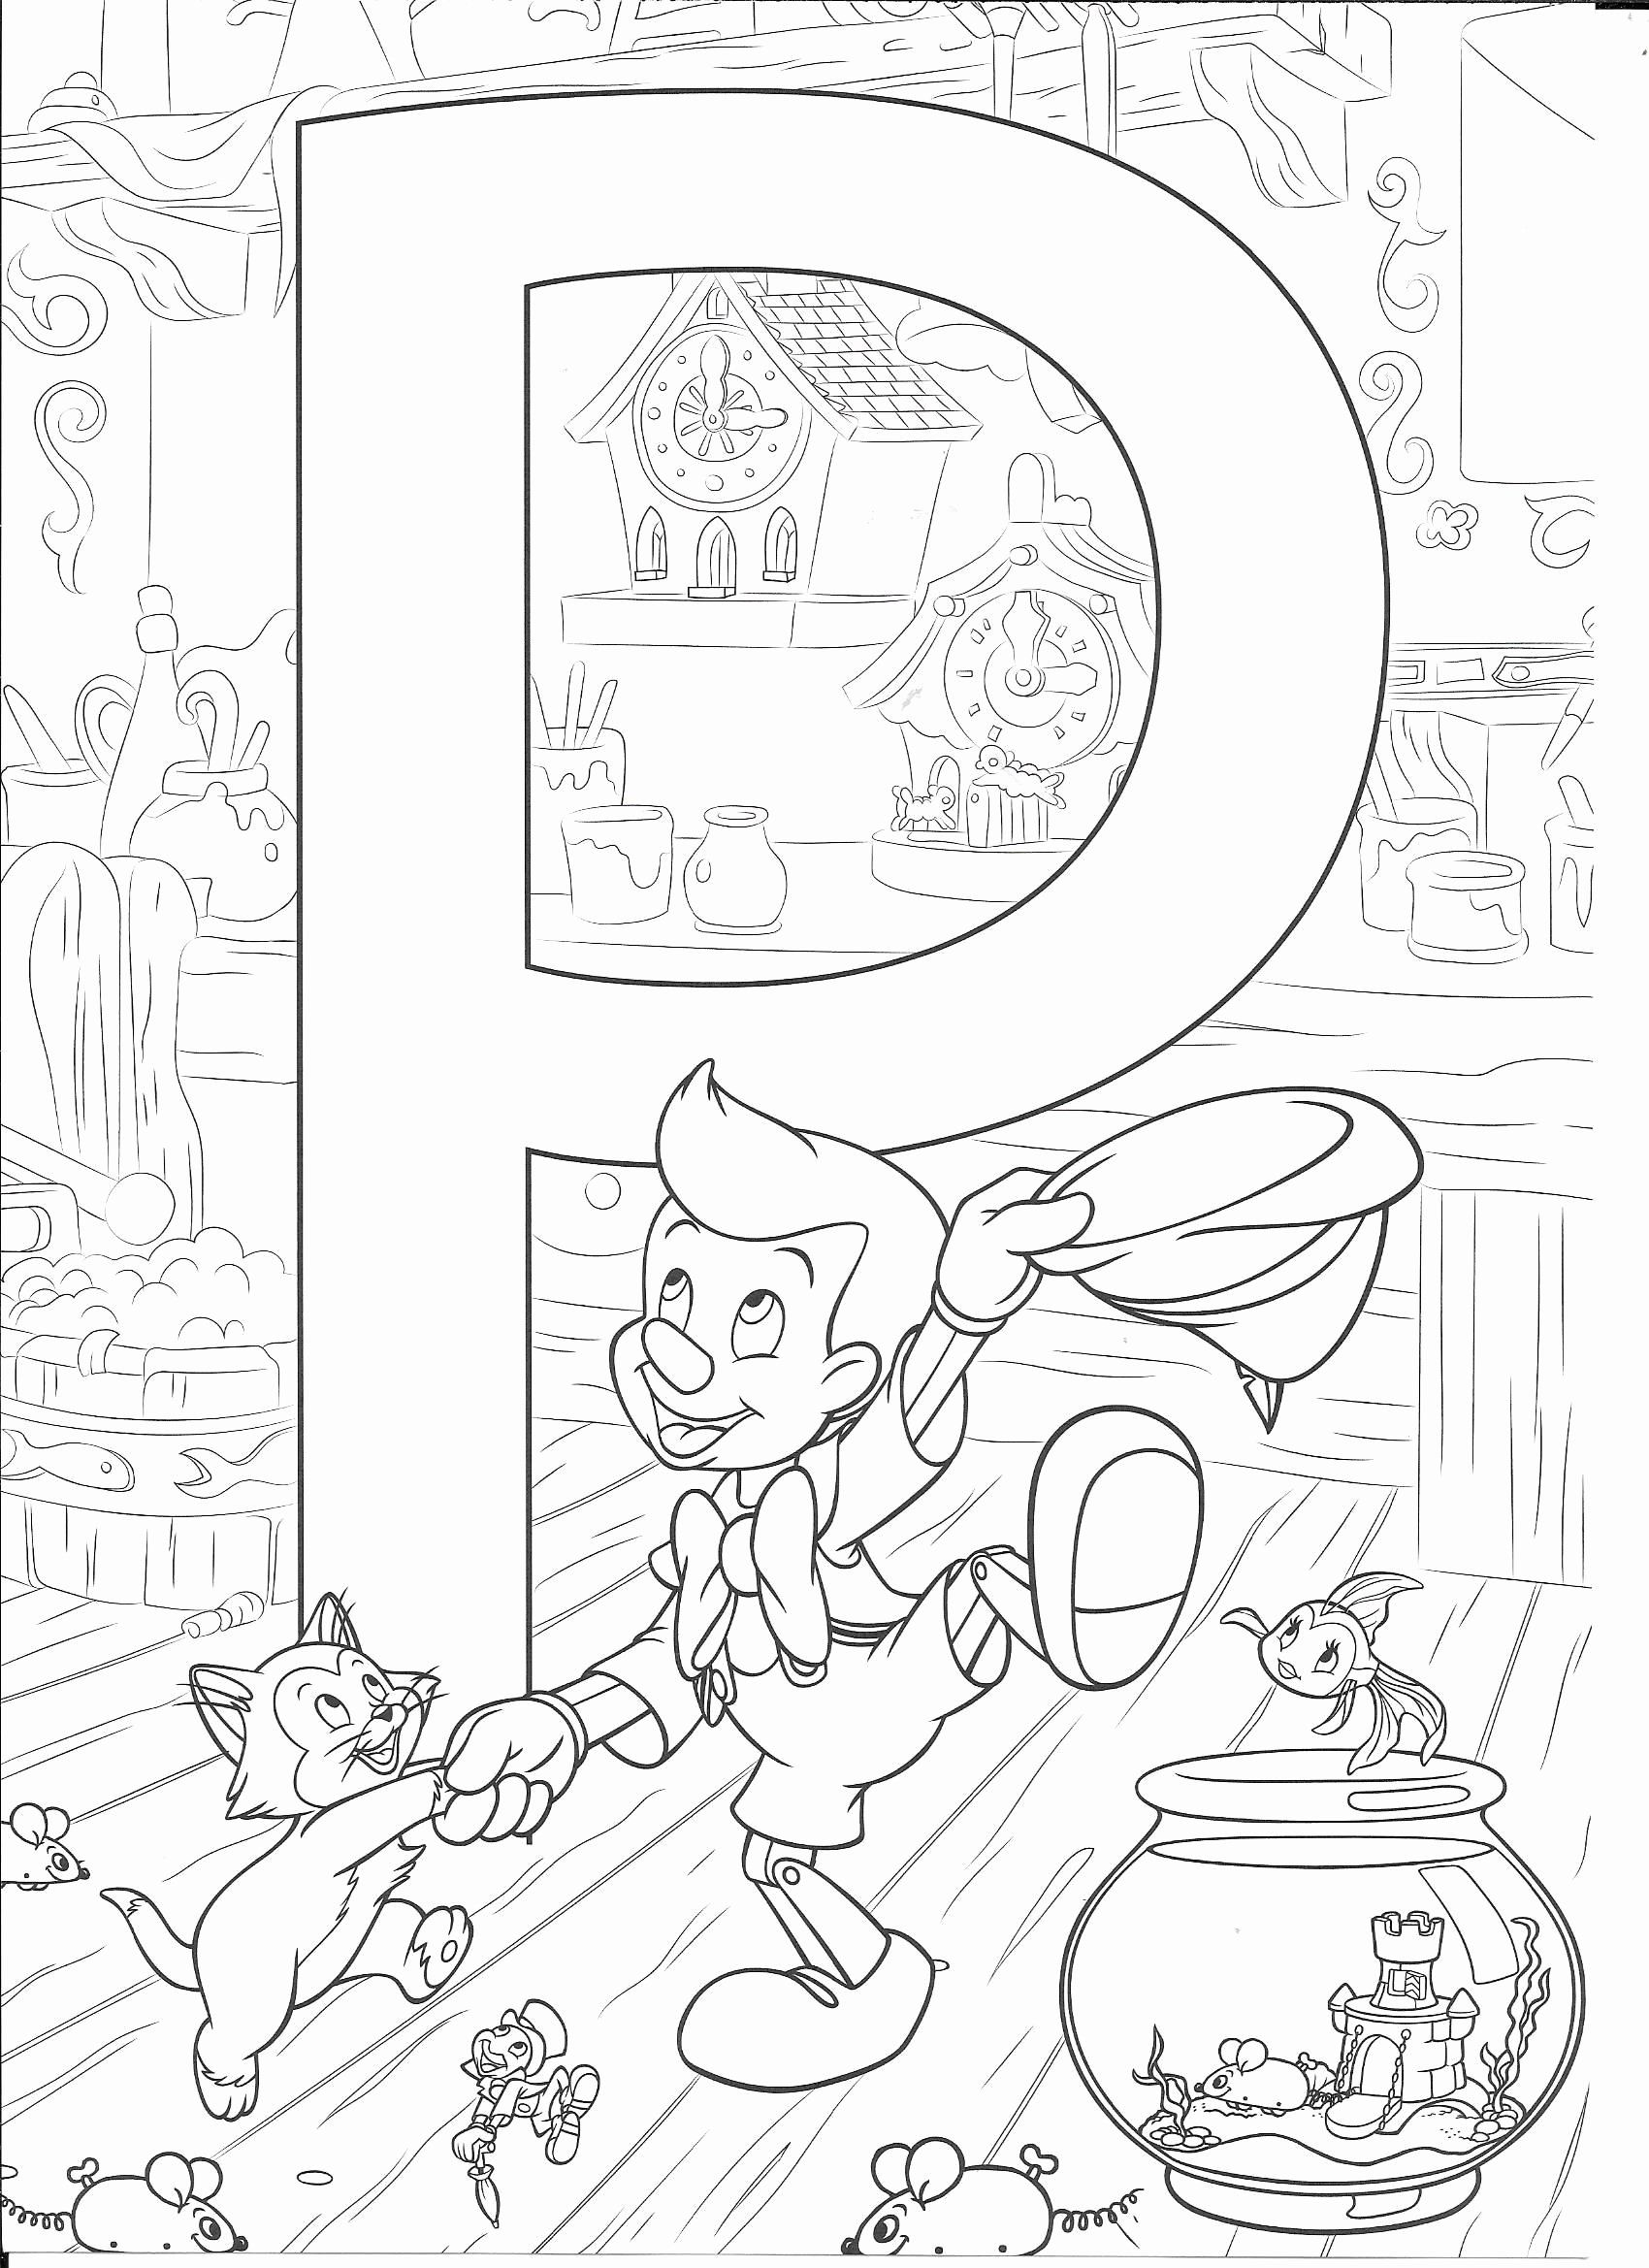 Get Well Coloring Card Lovely Startearlyrun In 2020 Abc Coloring Pages Abc Coloring Disney Coloring Pages